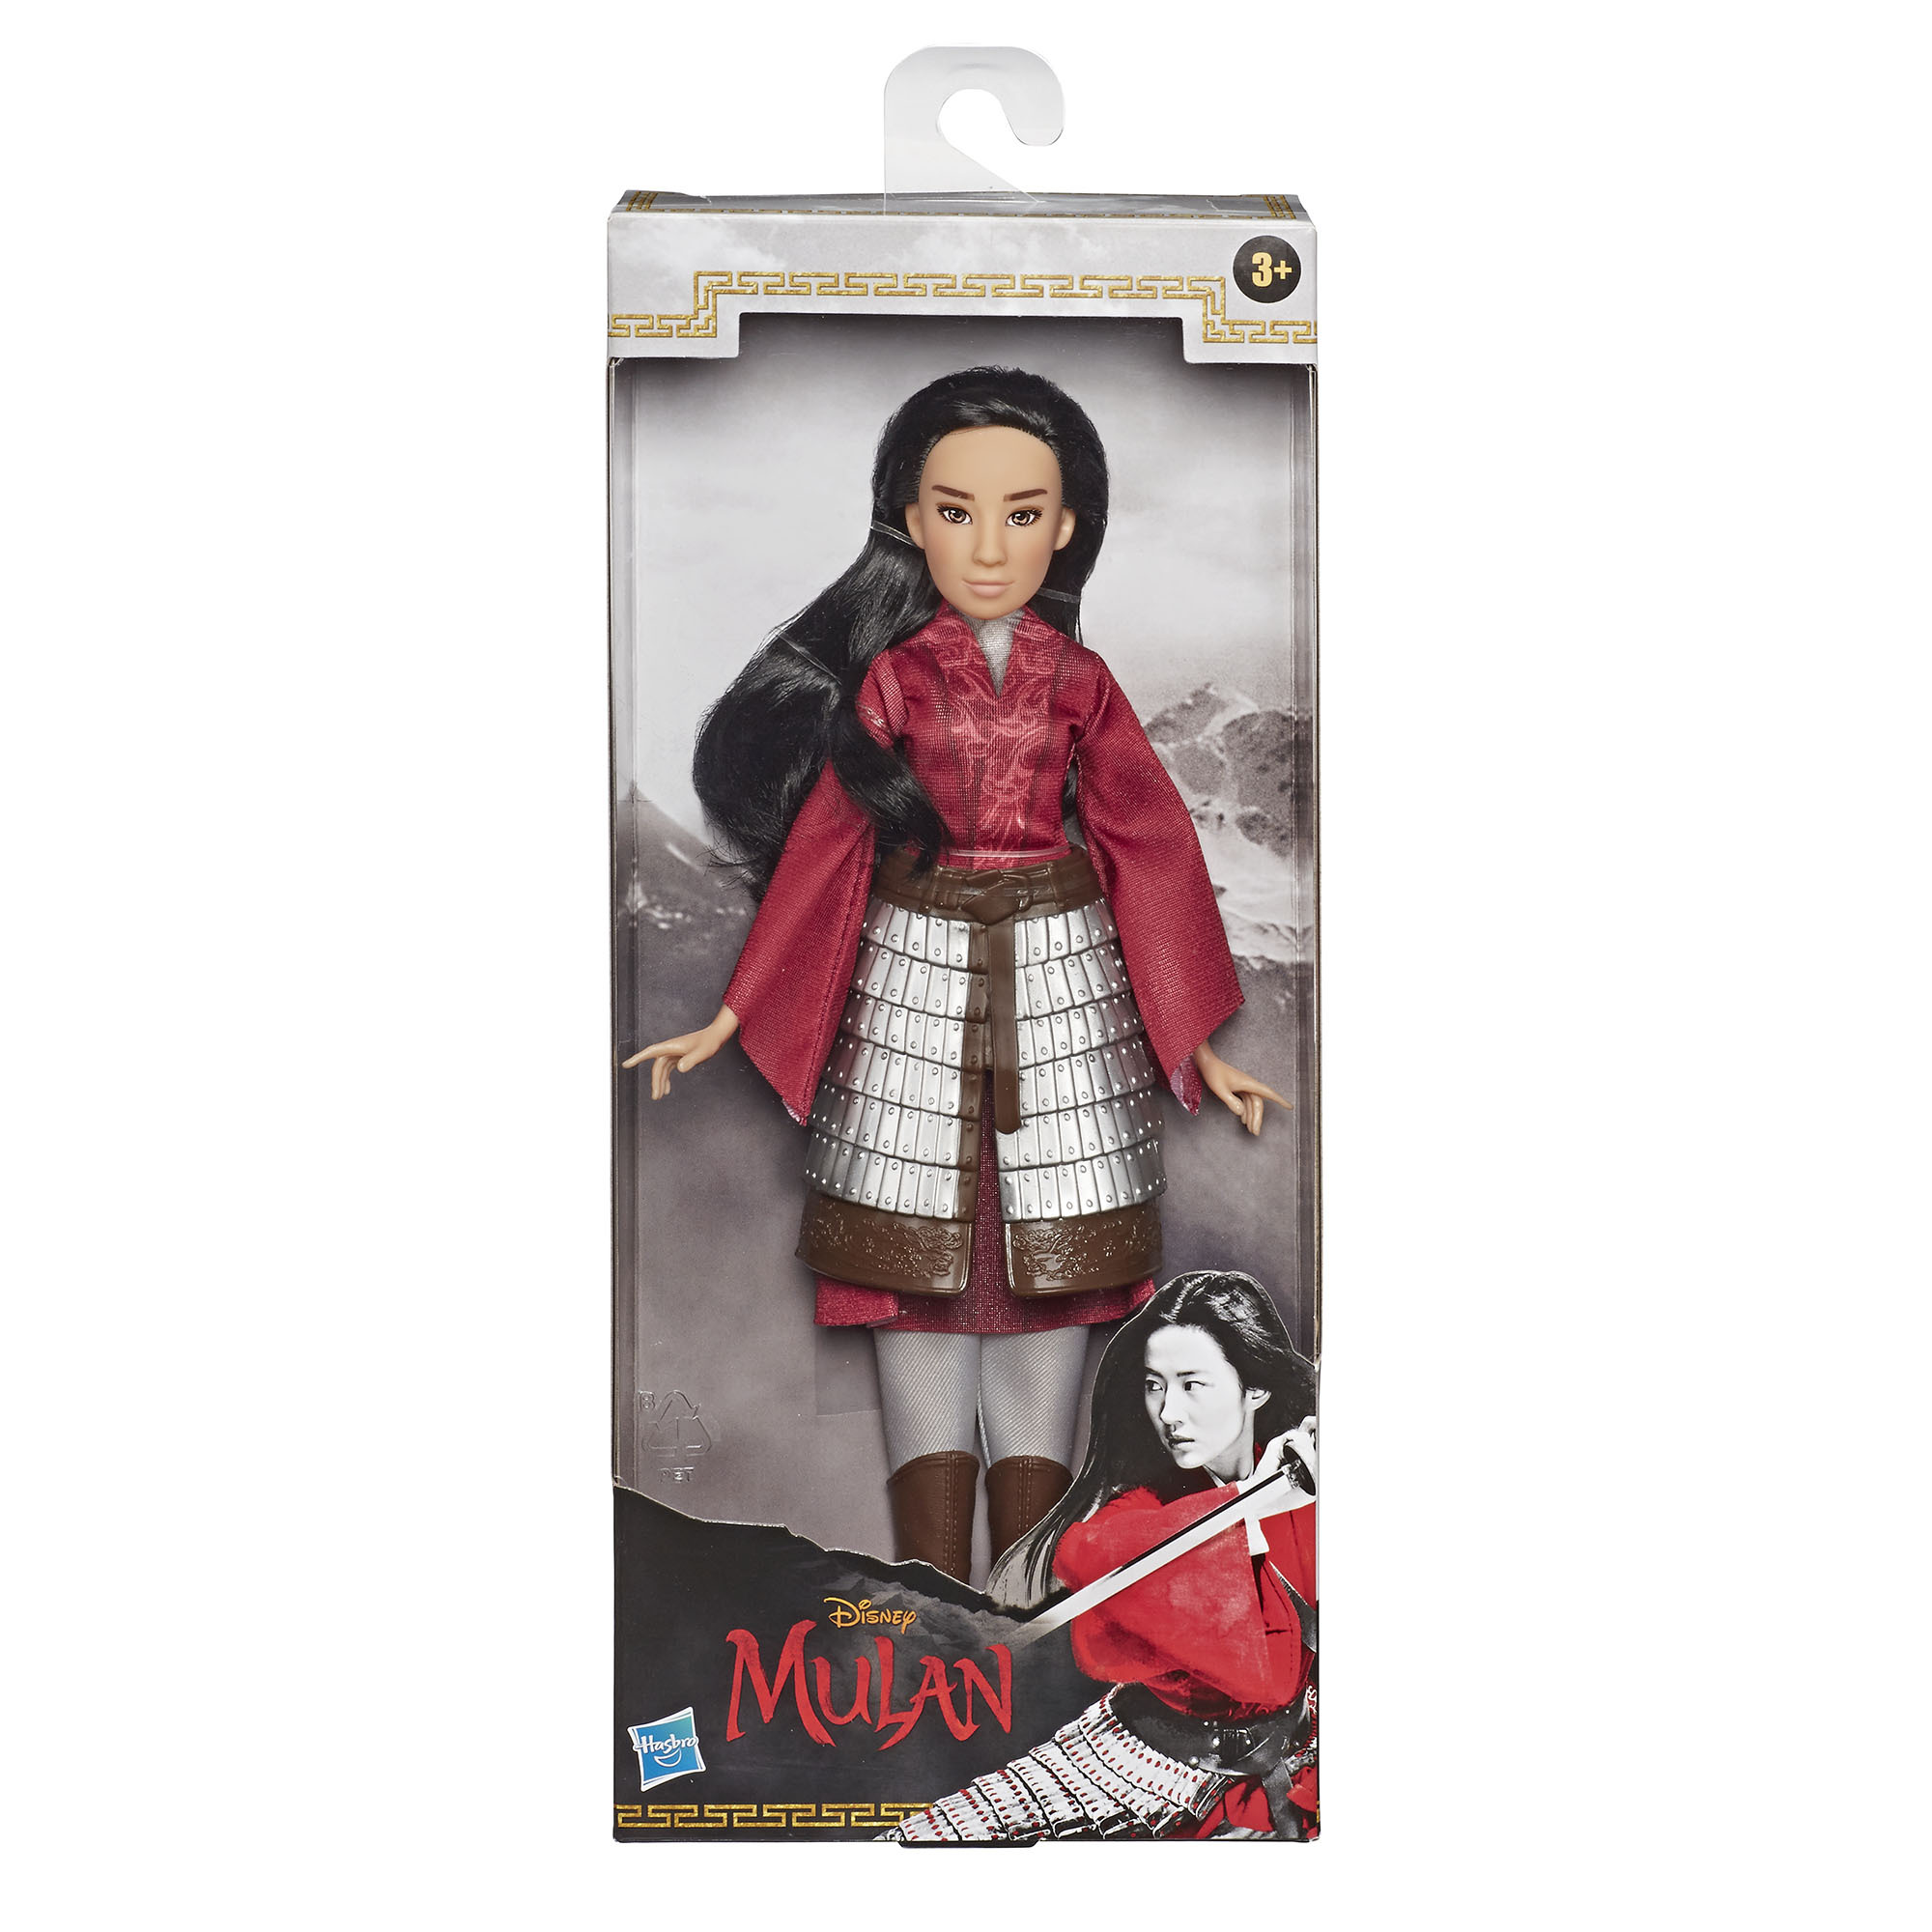 Disney Mulan Fashion Doll with Skirt Armor Inspired by Disneys Mulan Movie Toy for Kids and Collectors and Top Pants Shoes